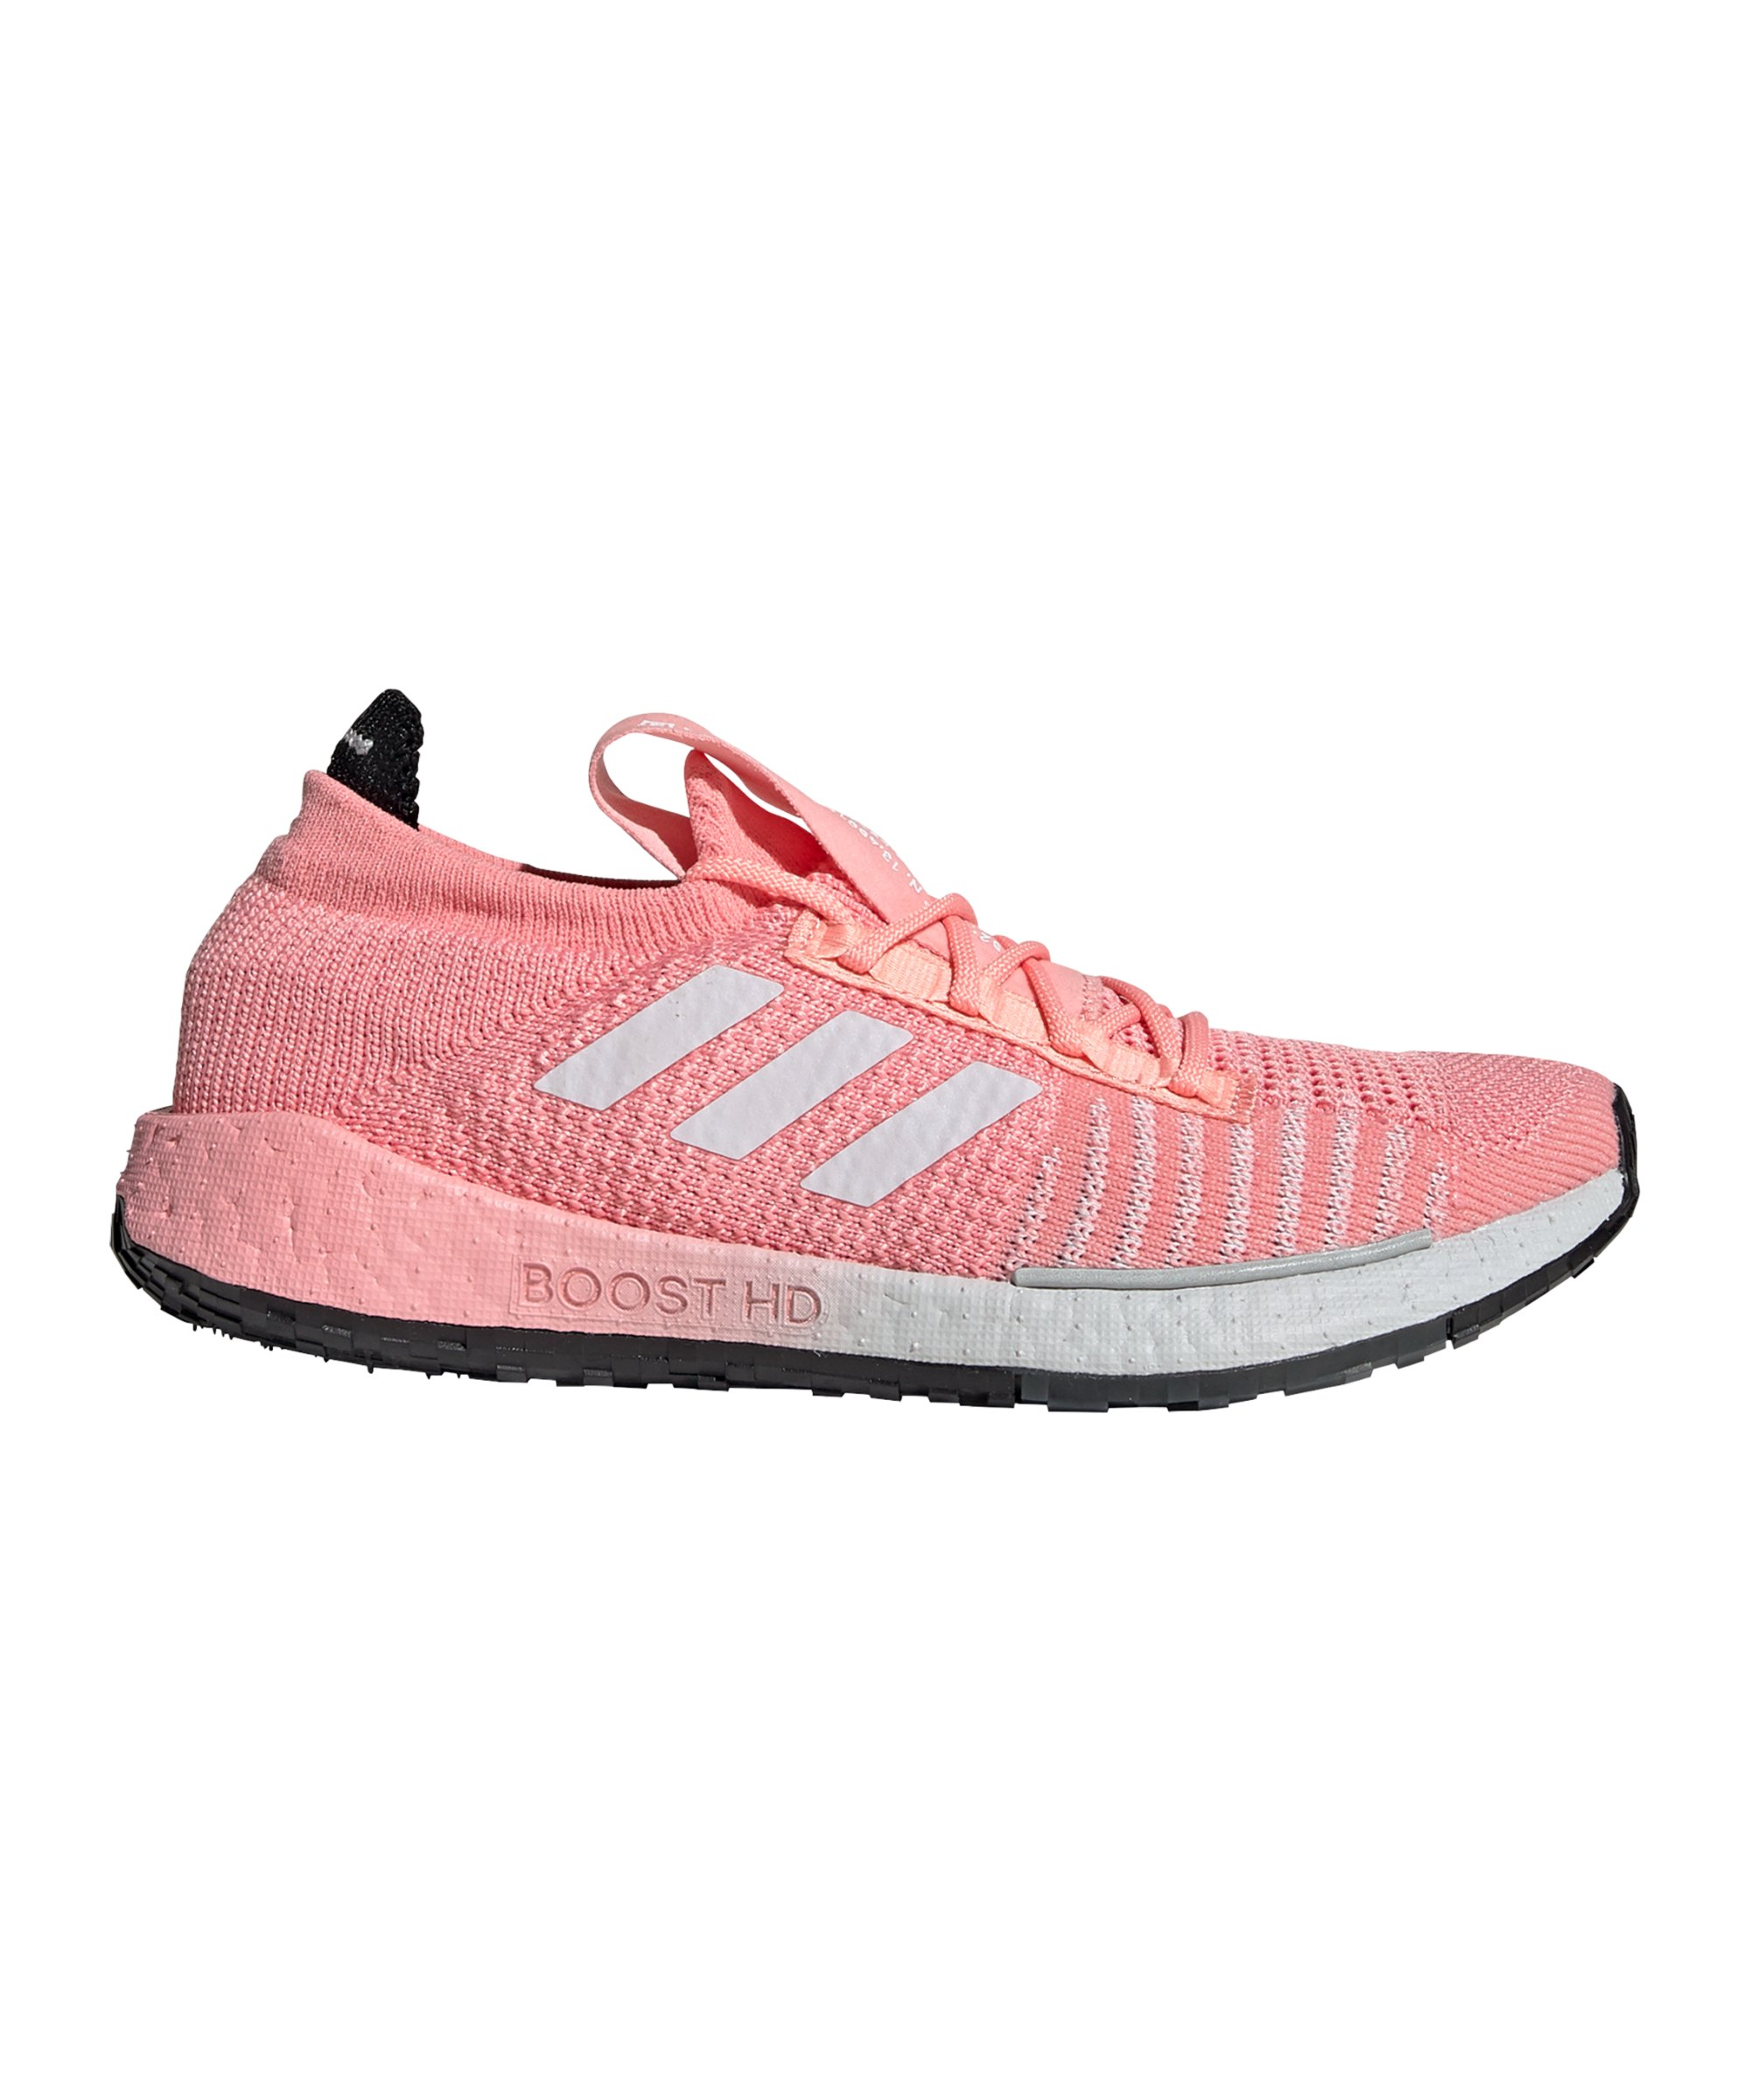 adidas Pulse Boost HD Running Damen Pink - pink